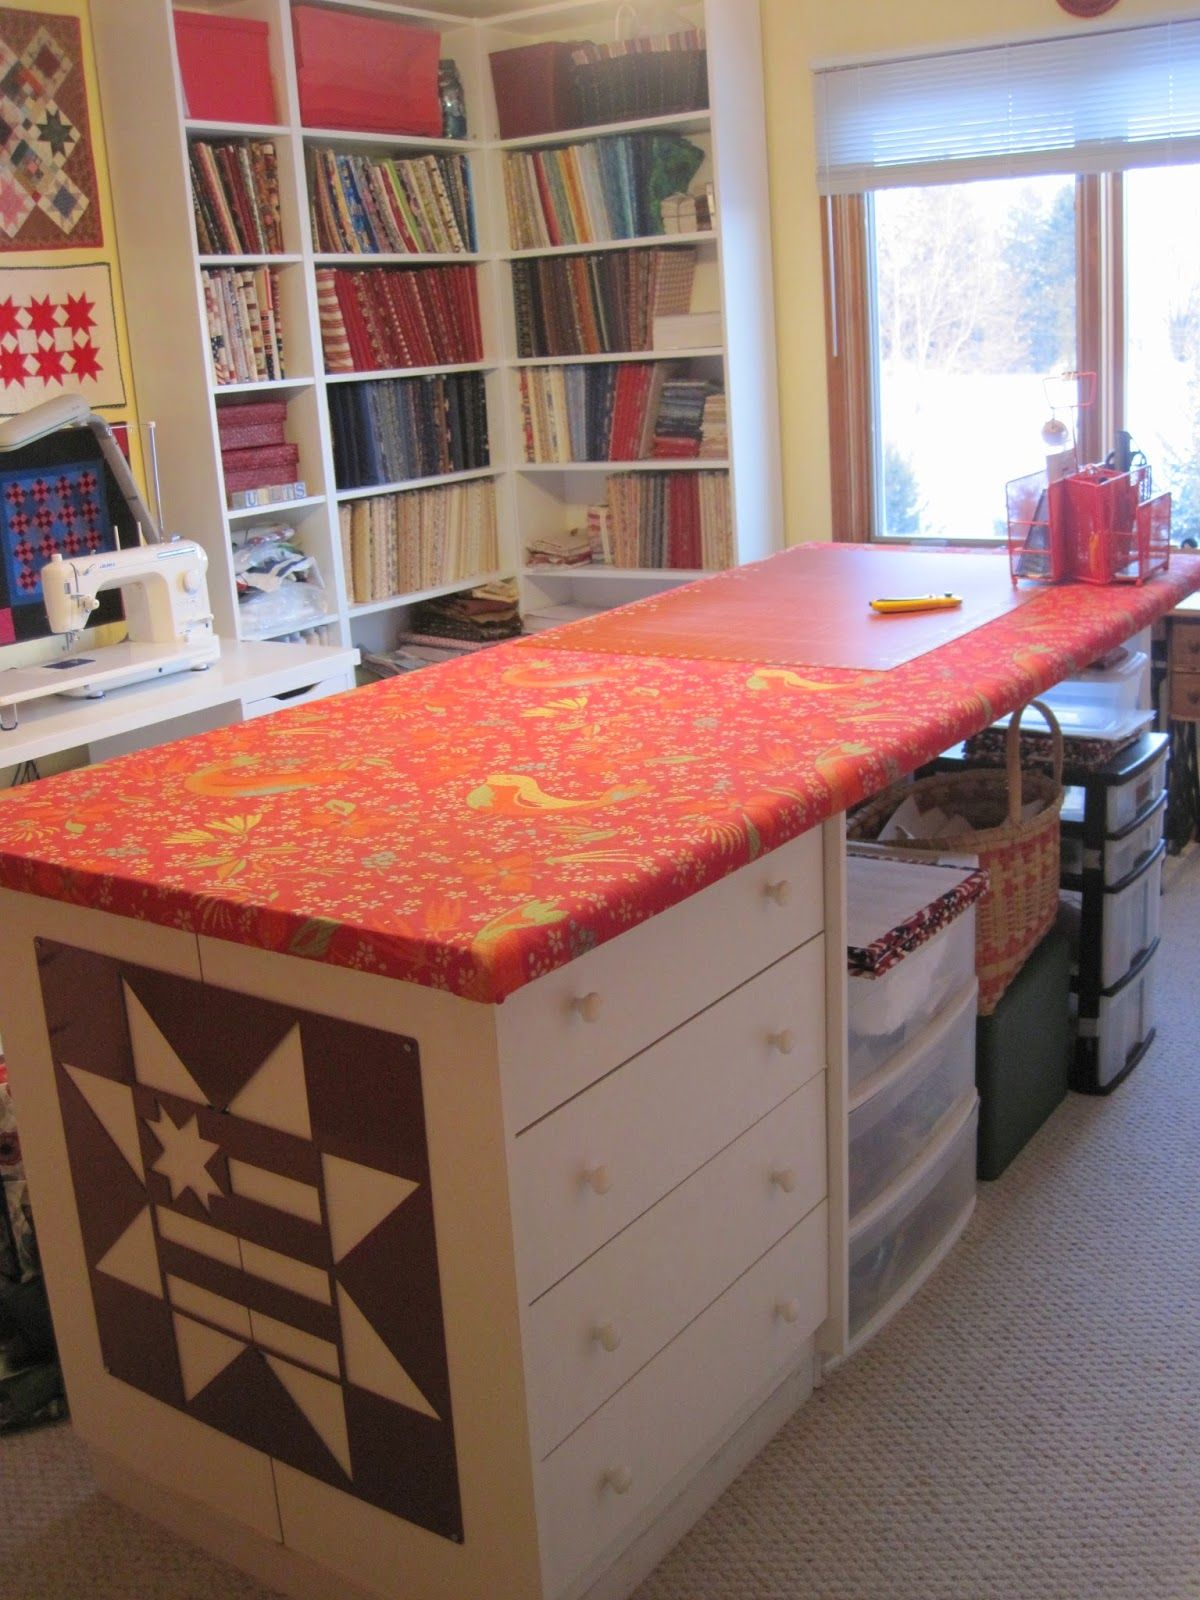 Designing A Sewing Room: Sewing Room Part 3: The Finish